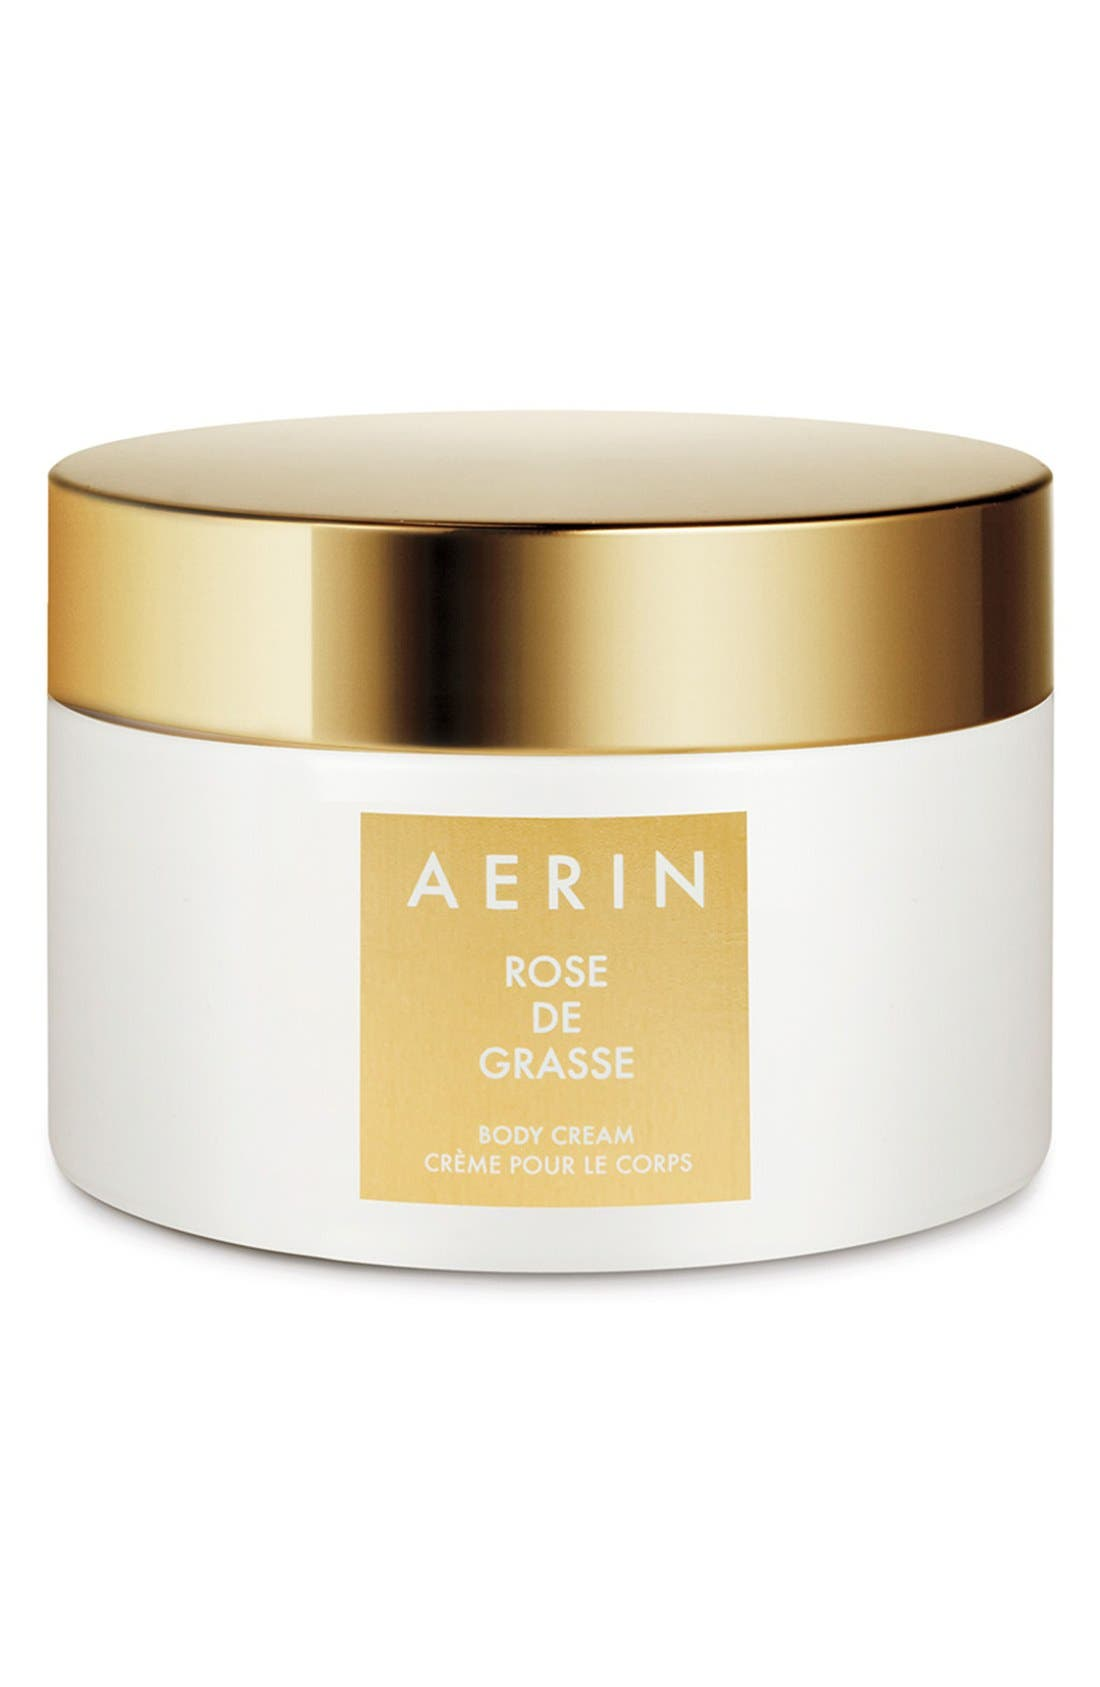 AERIN Beauty Rose de Grasse Body Cream